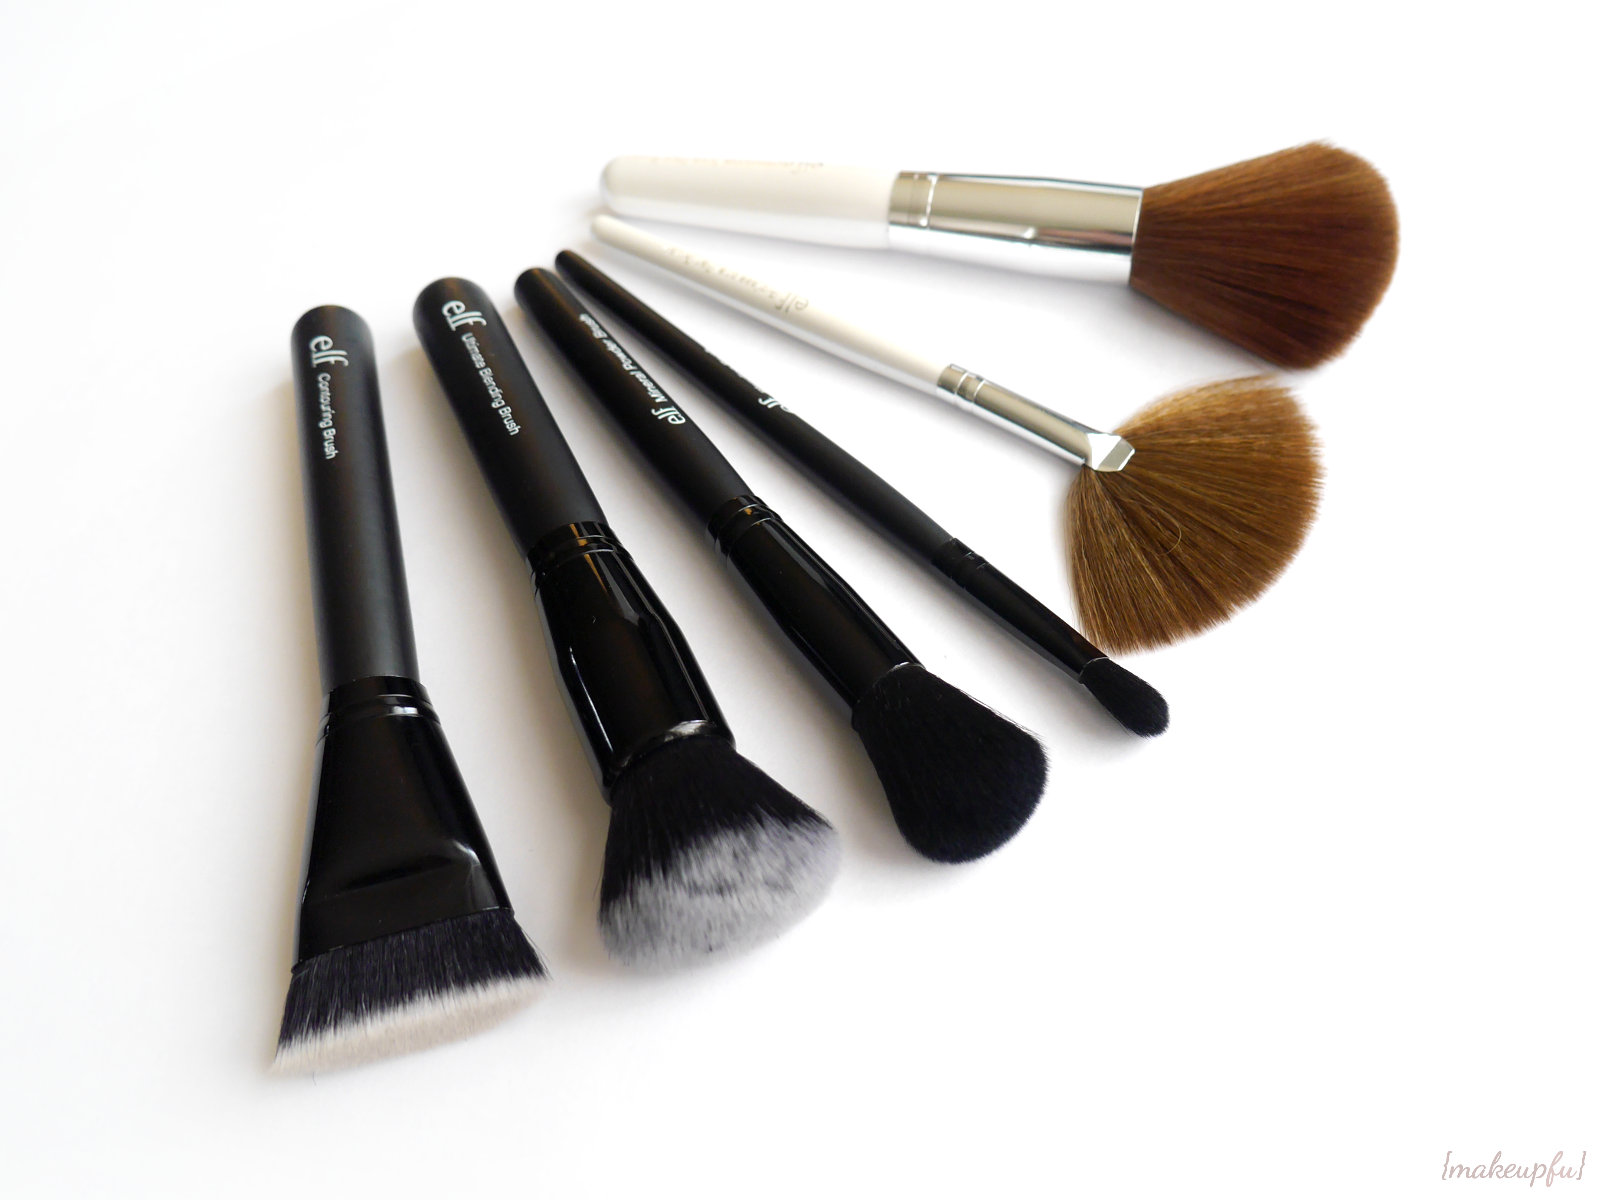 e.l.f. Studio Brushes (Contouring Brush, Ultimate Blending Brush, Mineral  Powder Brush, Blending